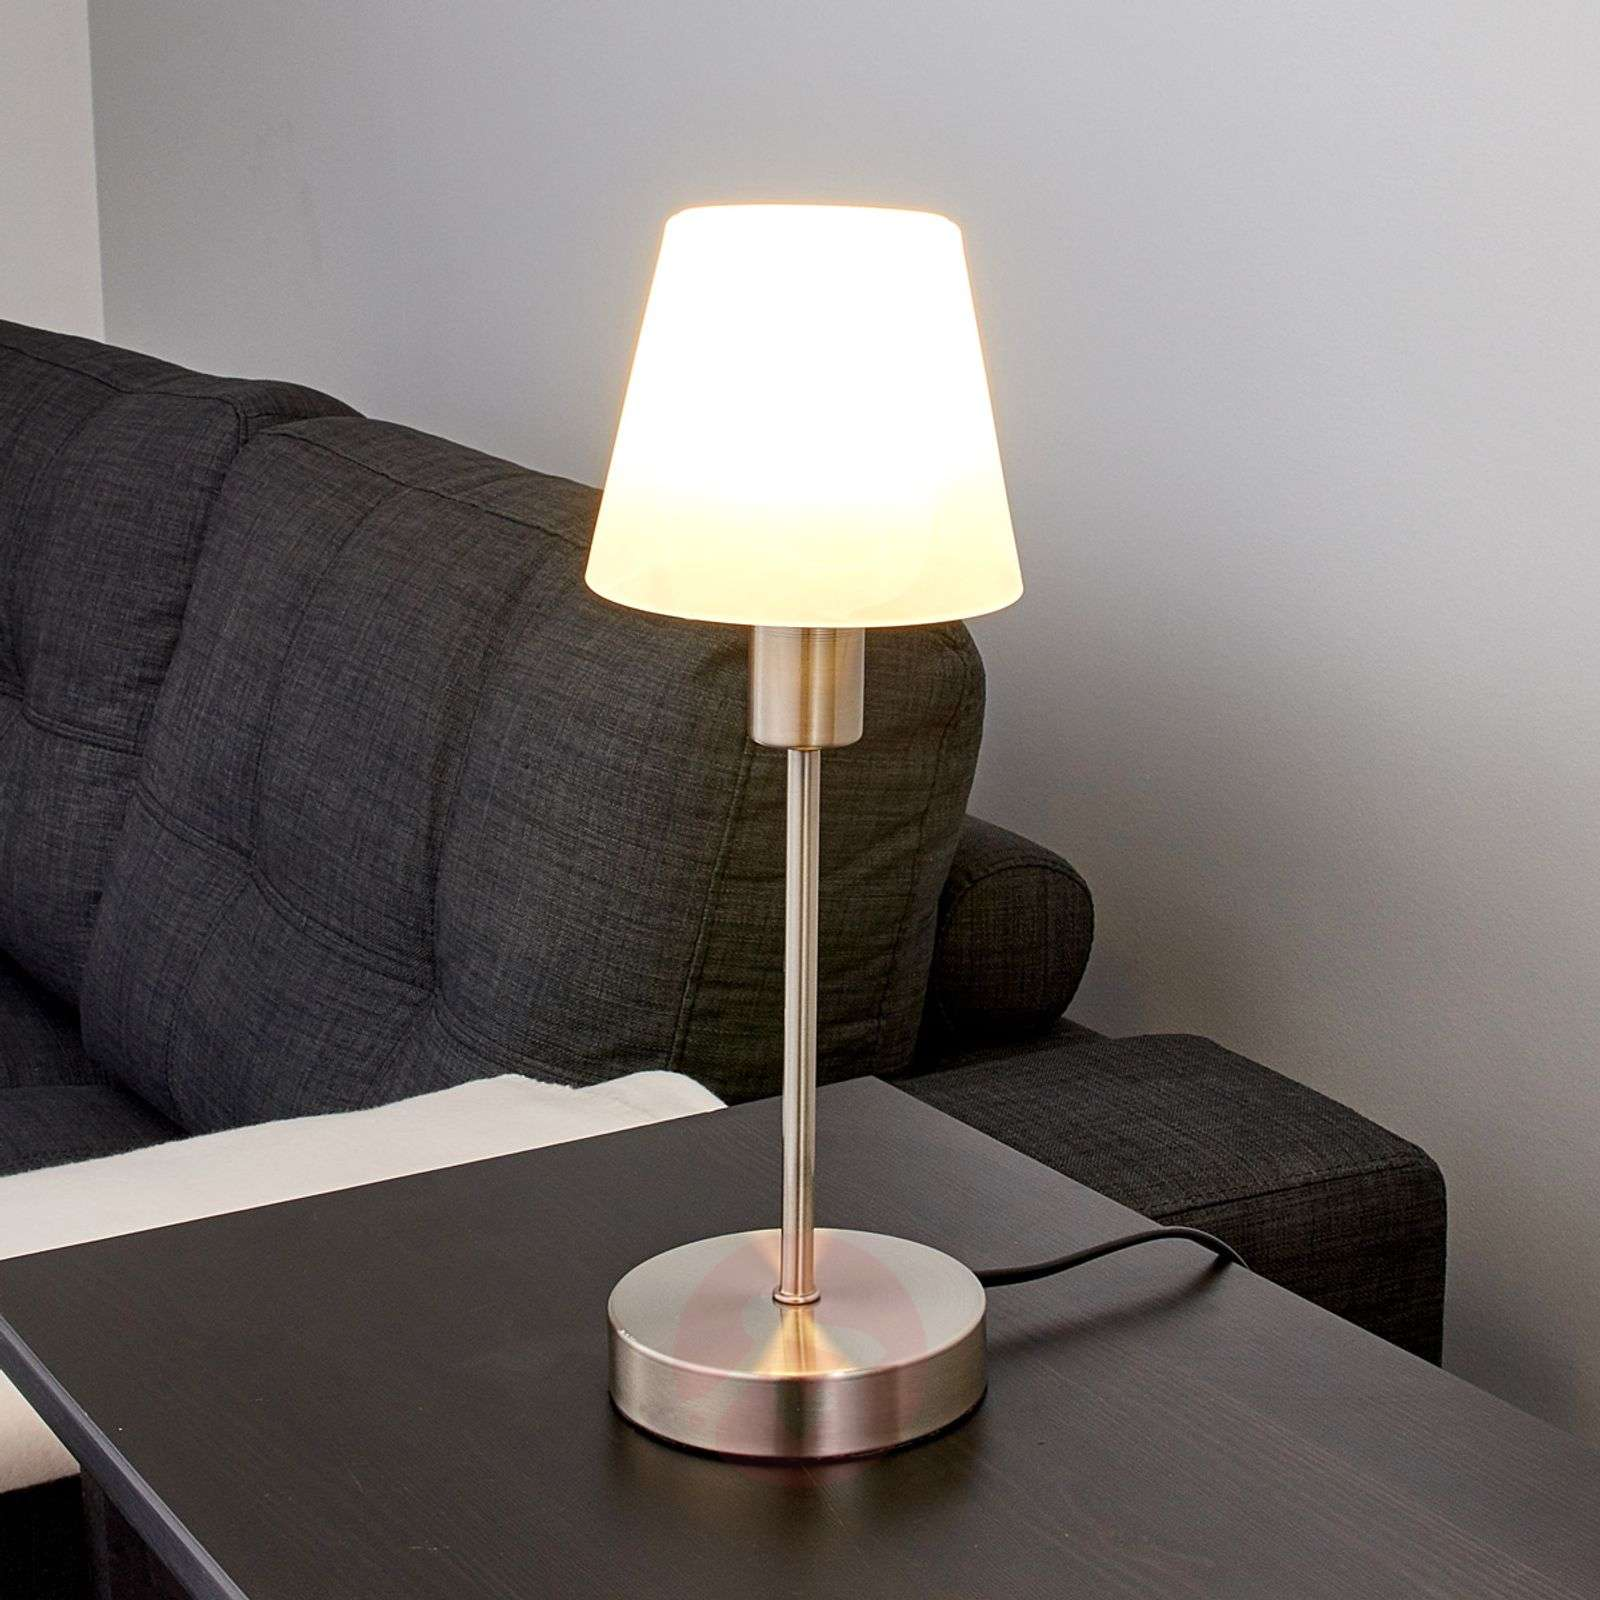 Night stand light Avarin with LEDs-9620064-01